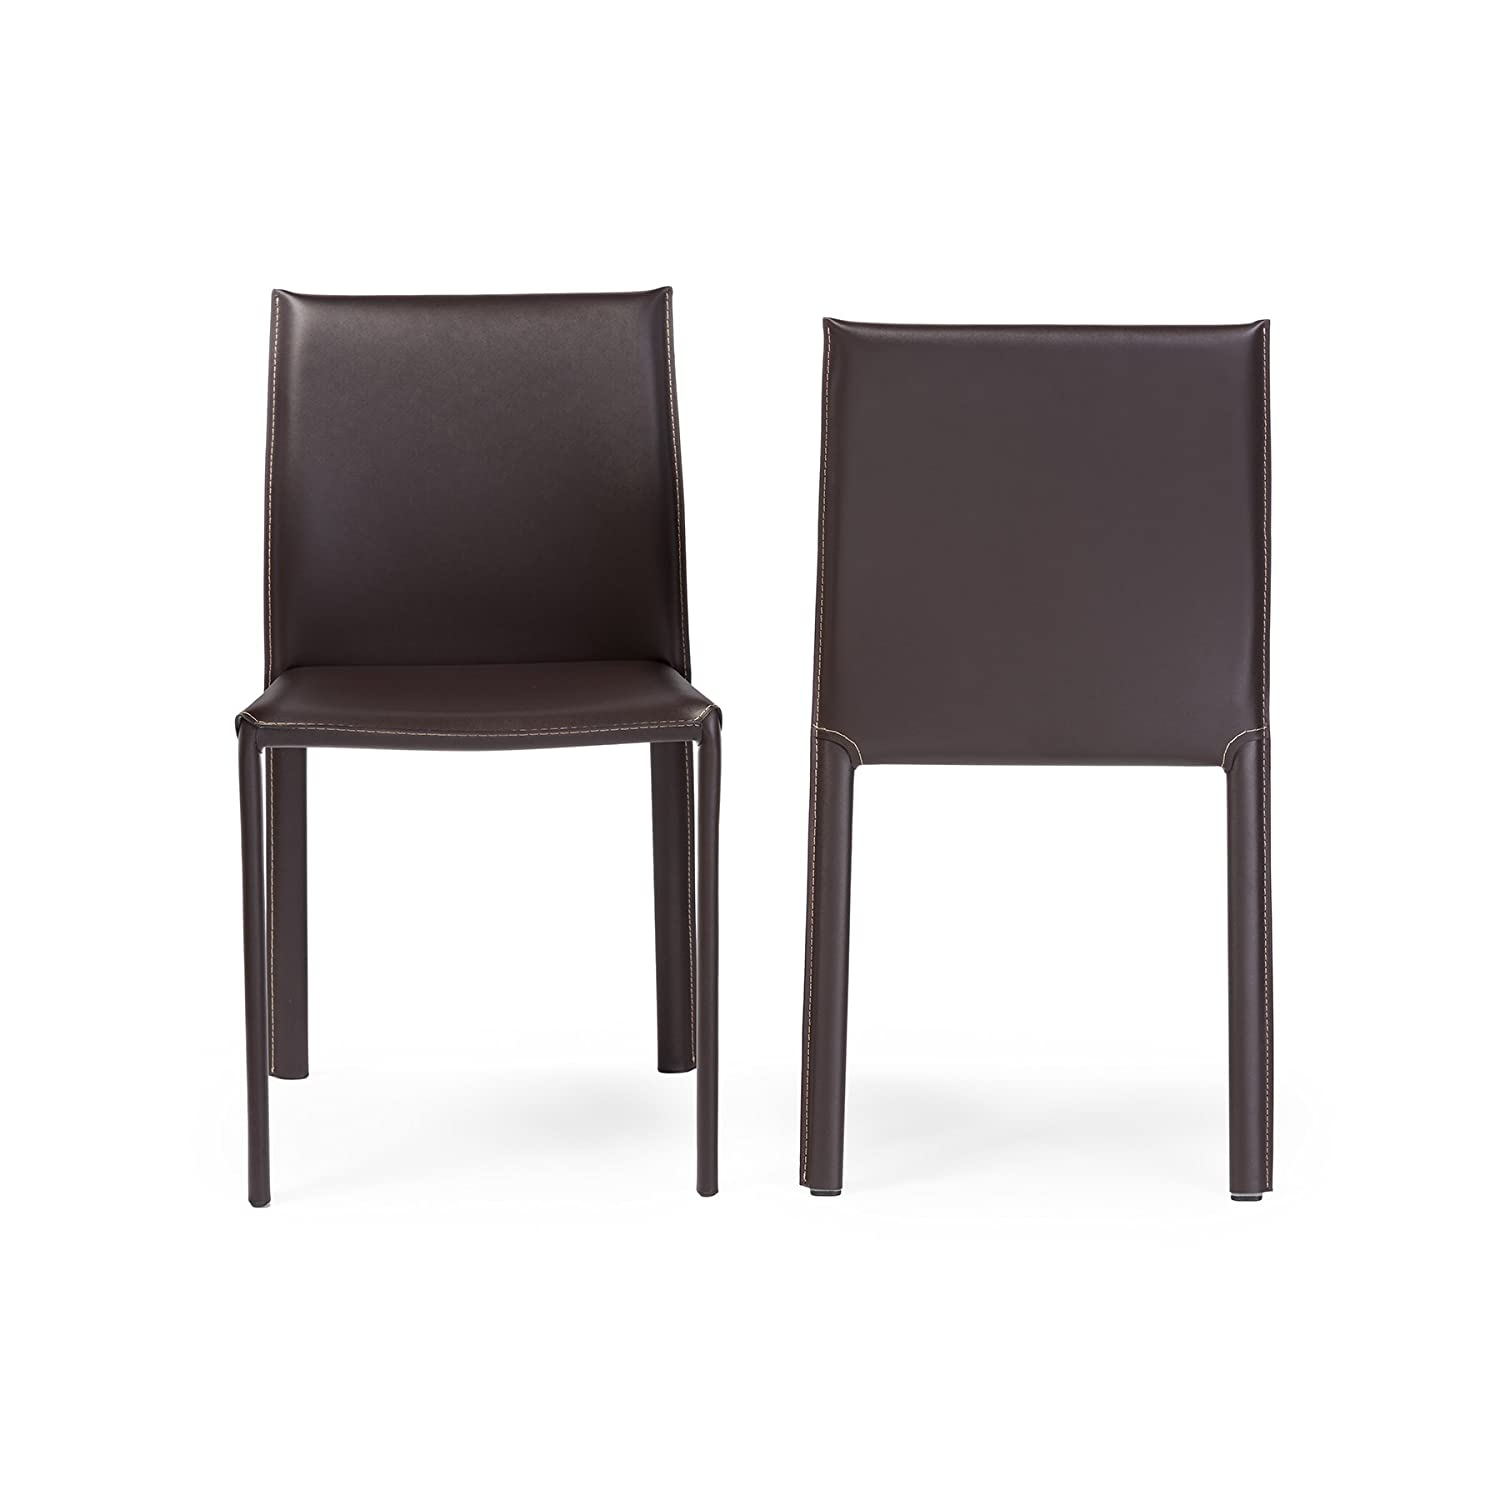 Amazon.com: Baxton Studio Leather Dining Chair, Set of 2, Espresso ...